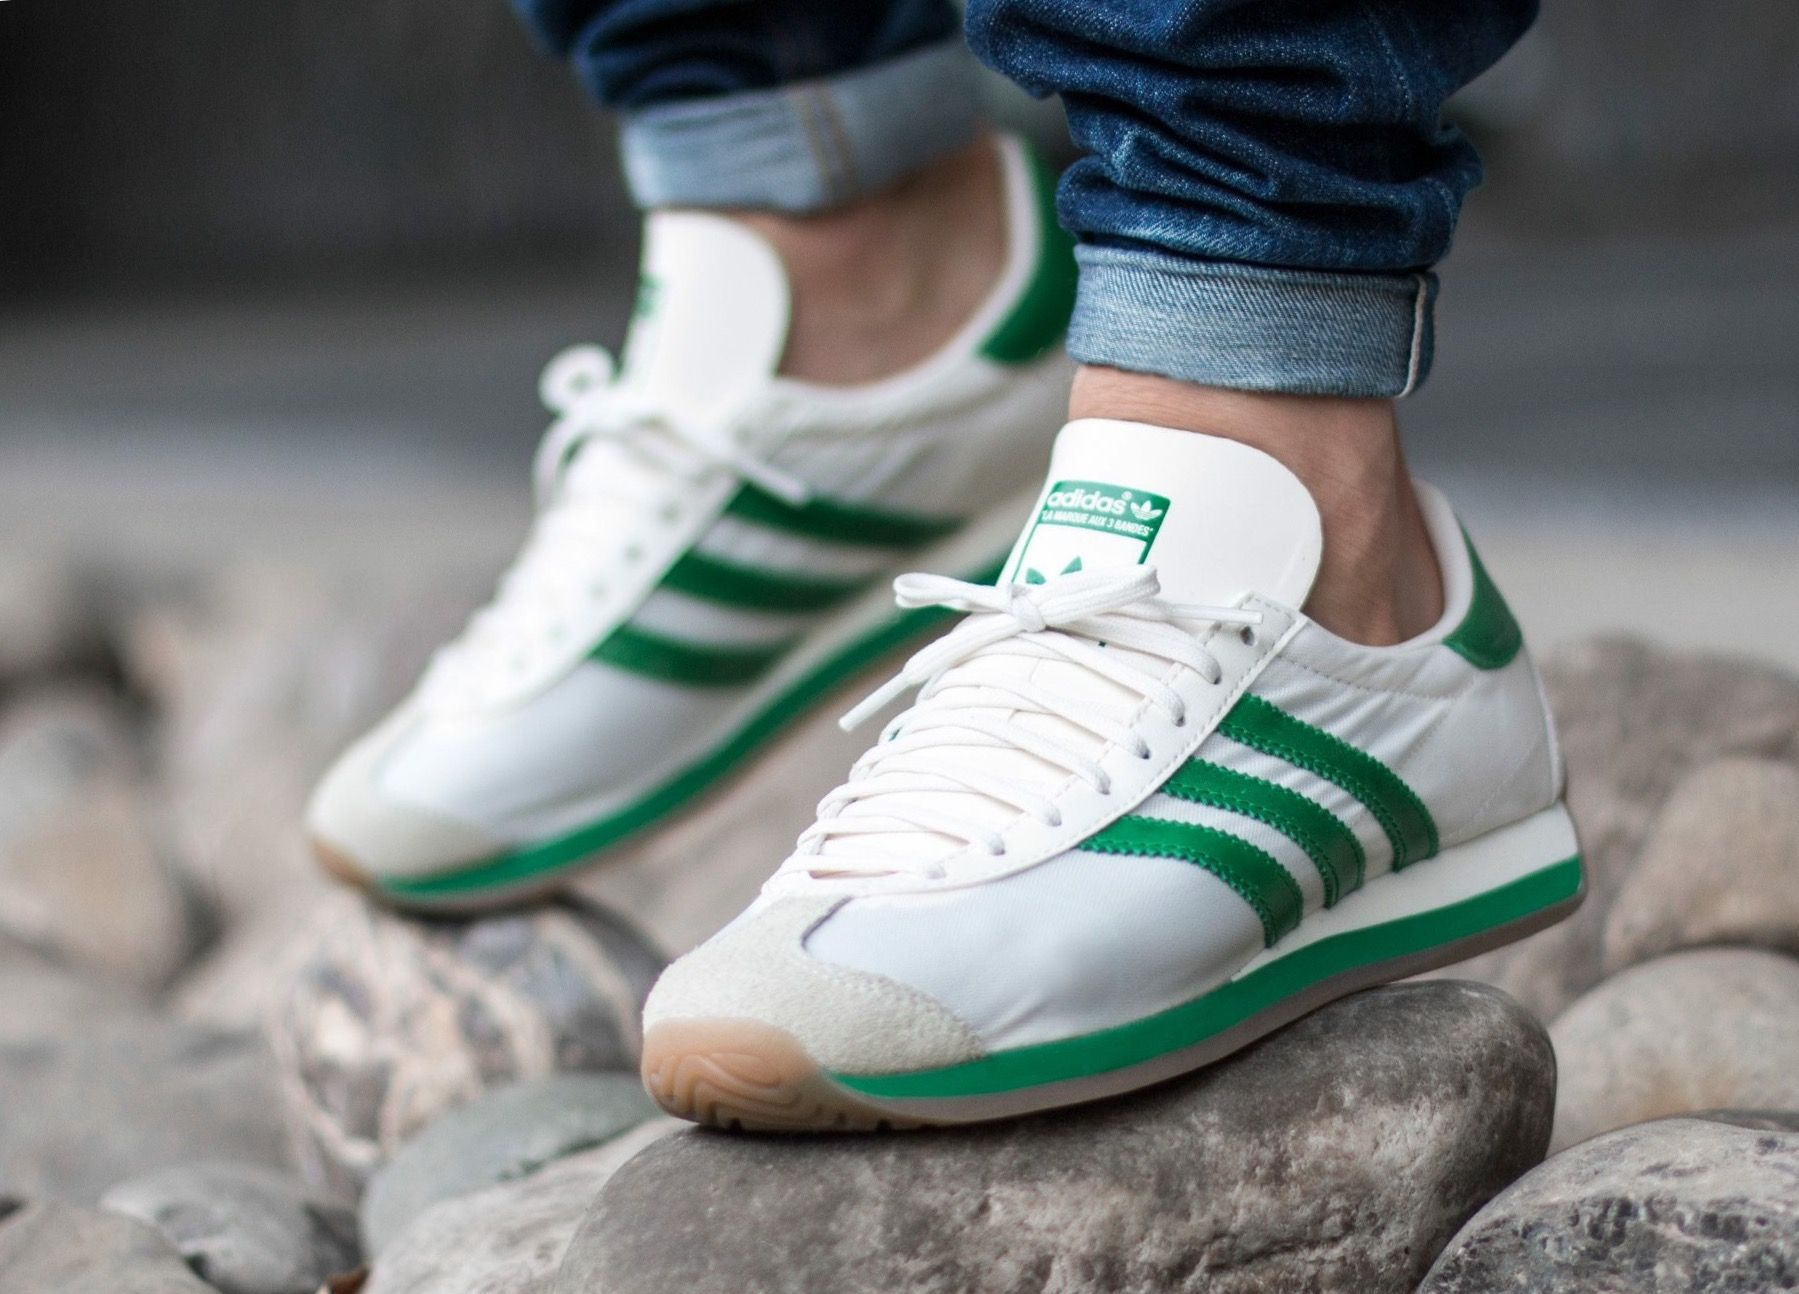 Og1978 Country Adidas Zapatillas 2019 En Originals c4ALSRq35j